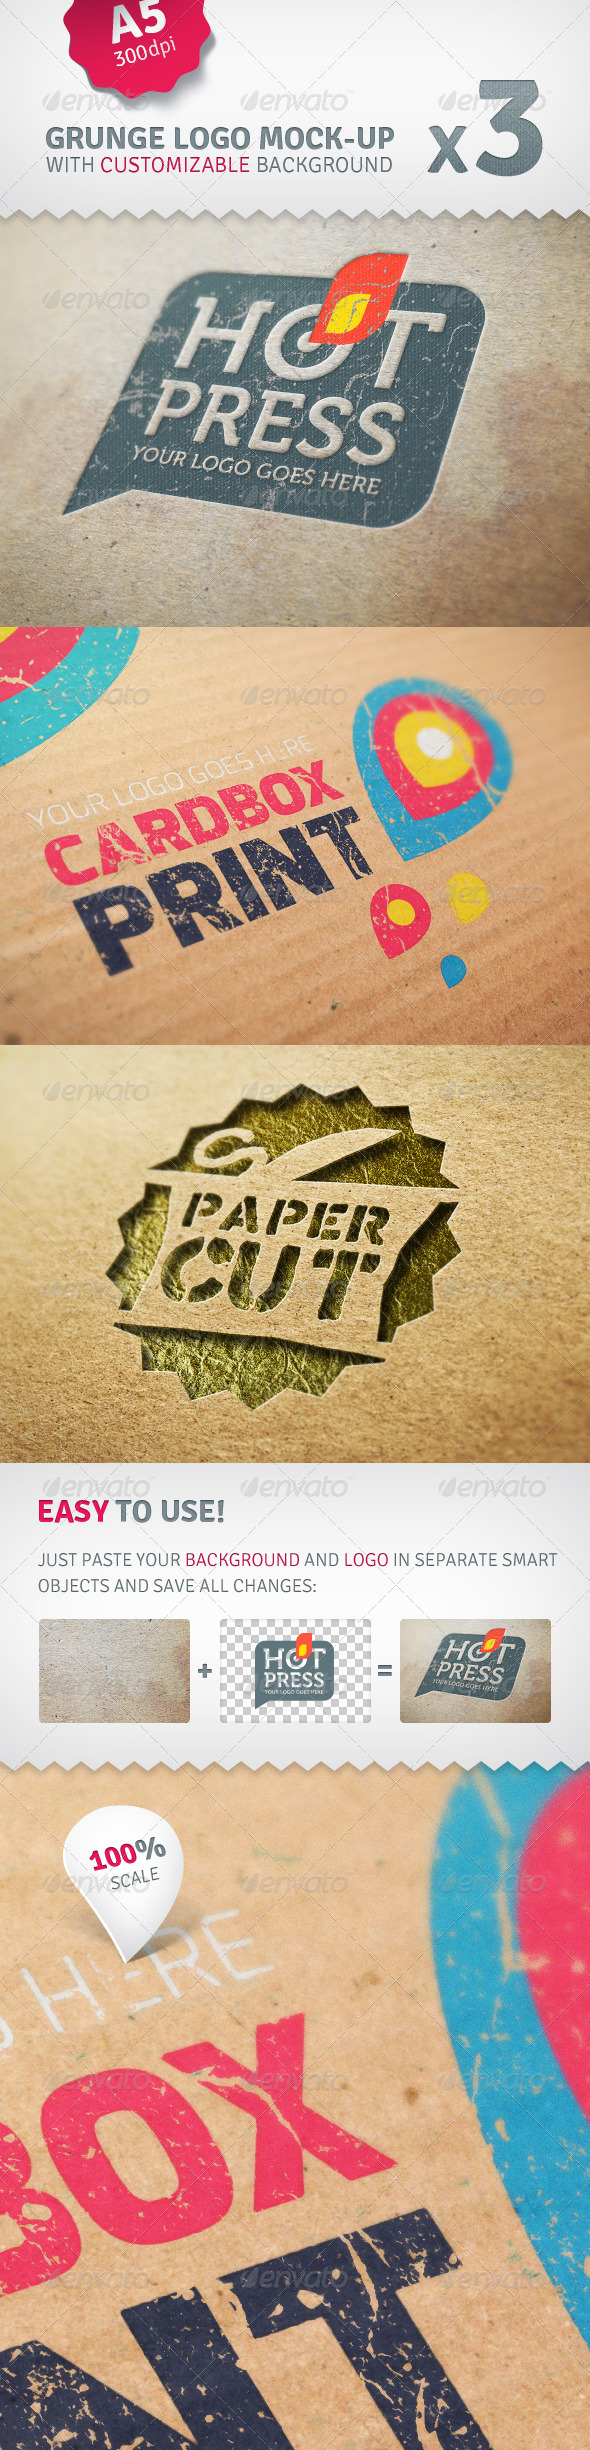 Cardboard Logo Mockup Pack With Custom Backgrounds - Logo Product Mock-Ups